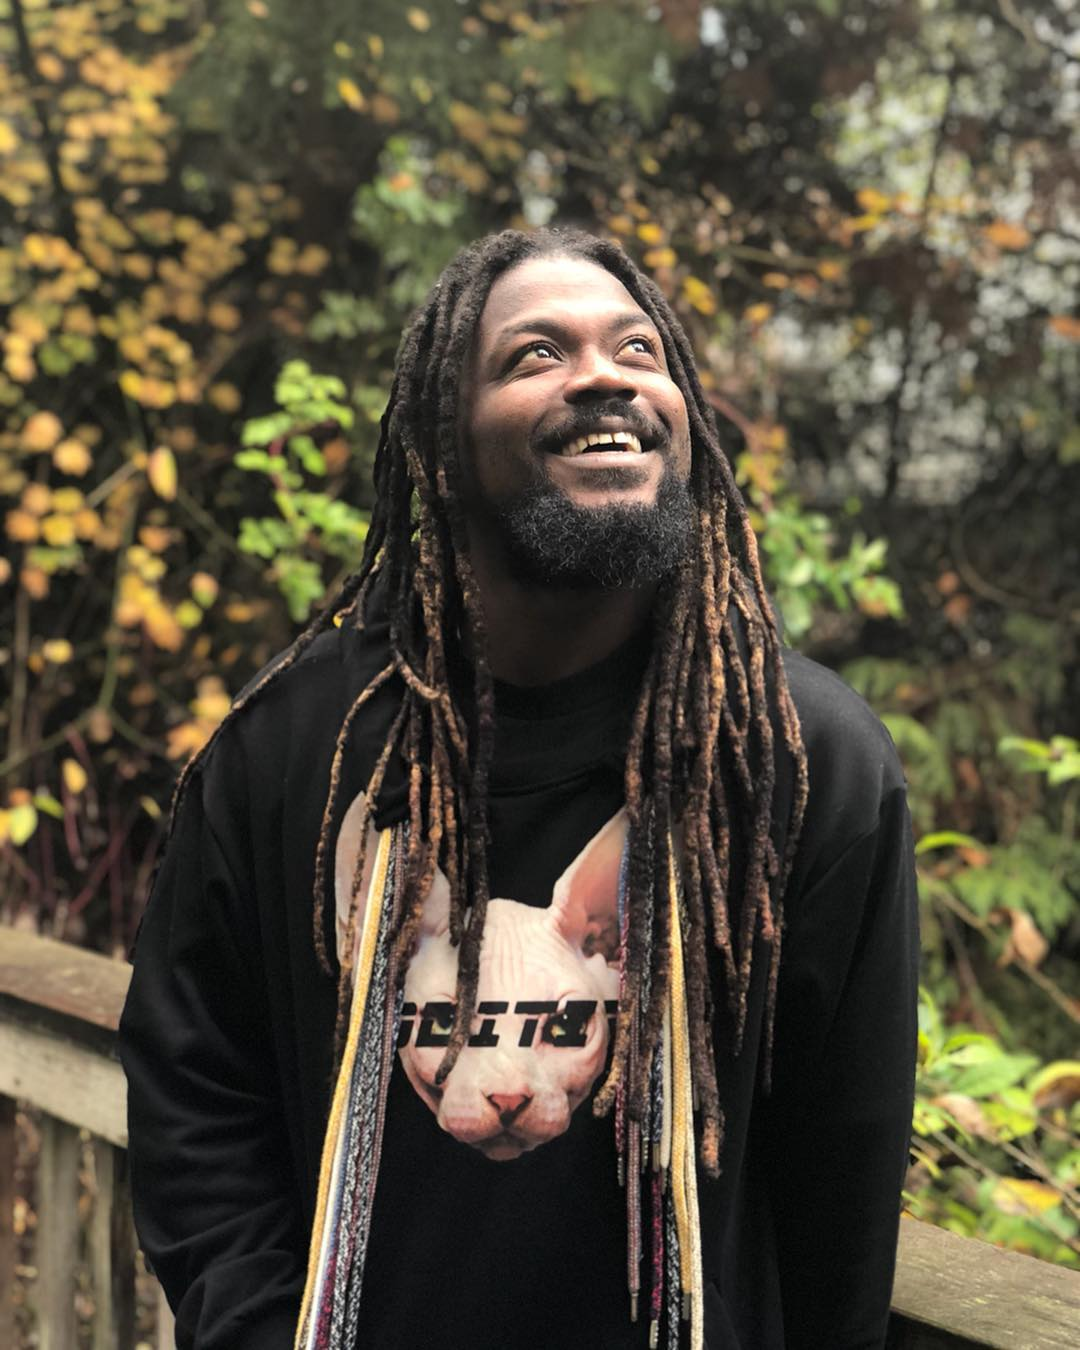 Samini's Untamed Album Peaks At Number 8 On Billboard Reggae Albums